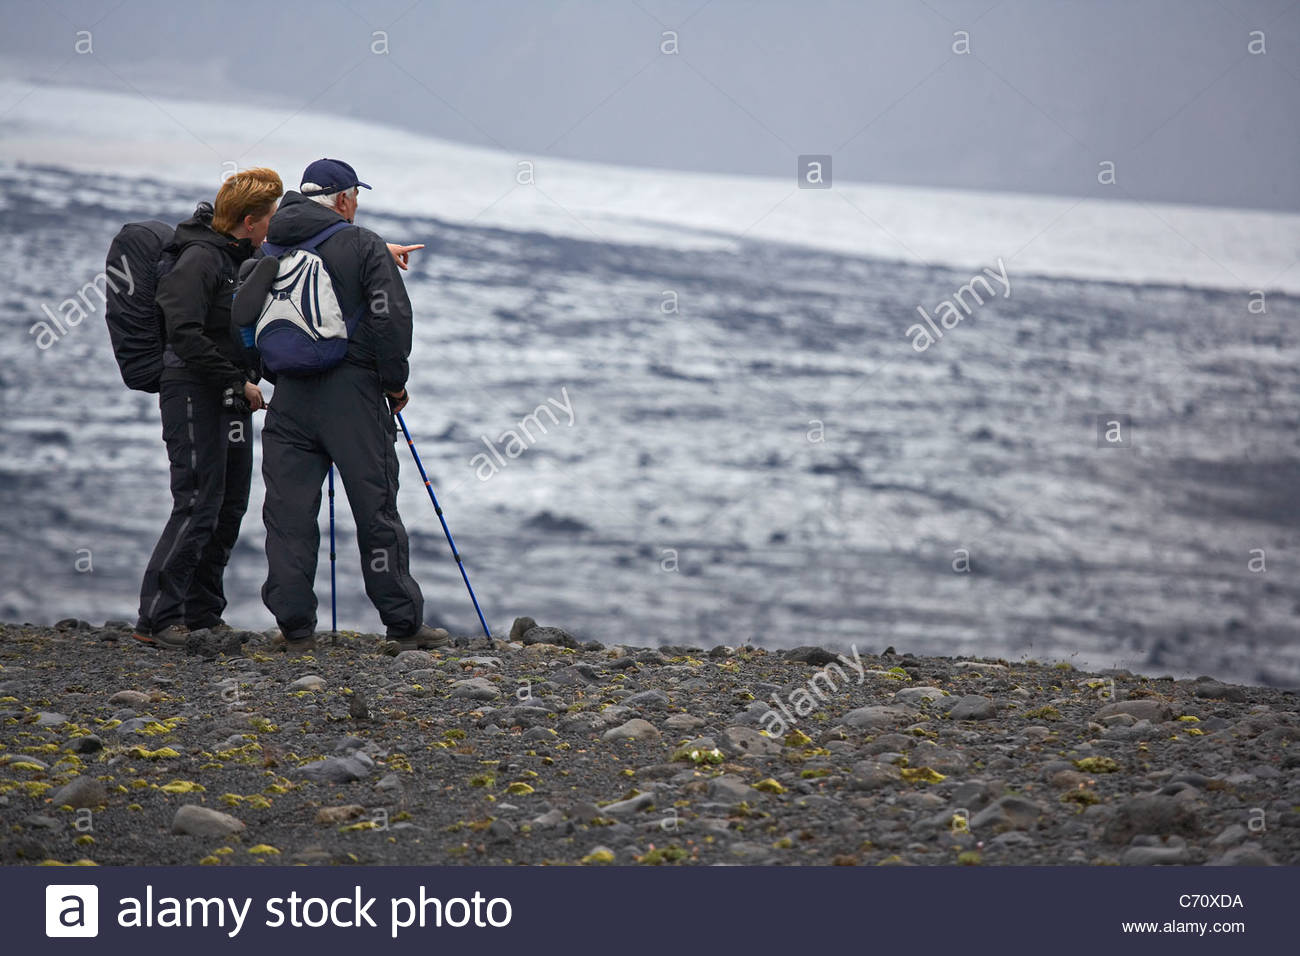 Hikers overlooking snowy landscape - Stock Image